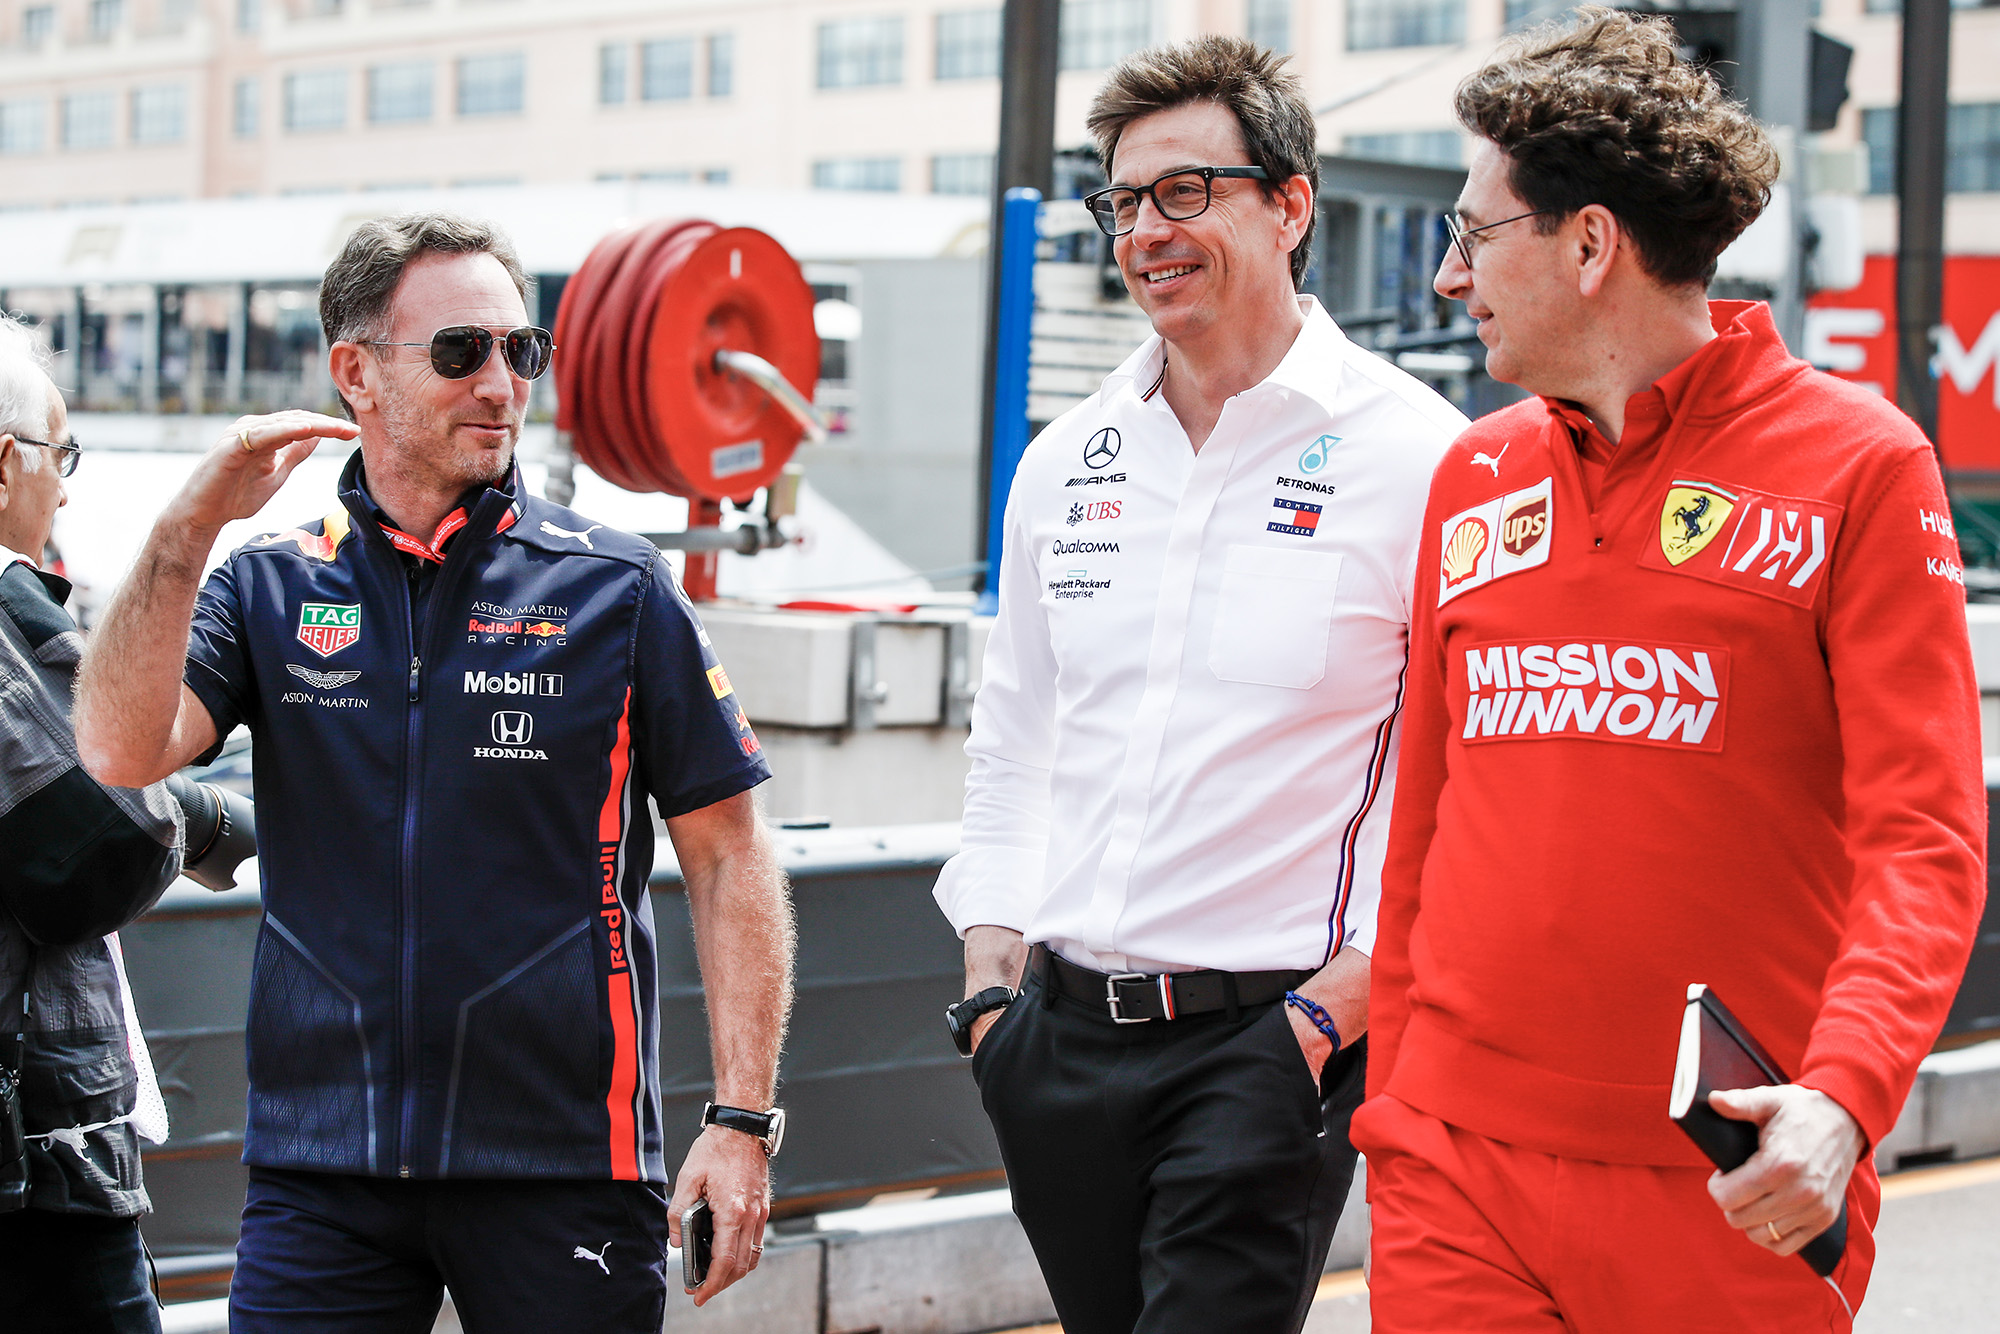 Christian Horner, Toto Wolff and Mattia Binotto at the 2019 Monaco Grand Prix